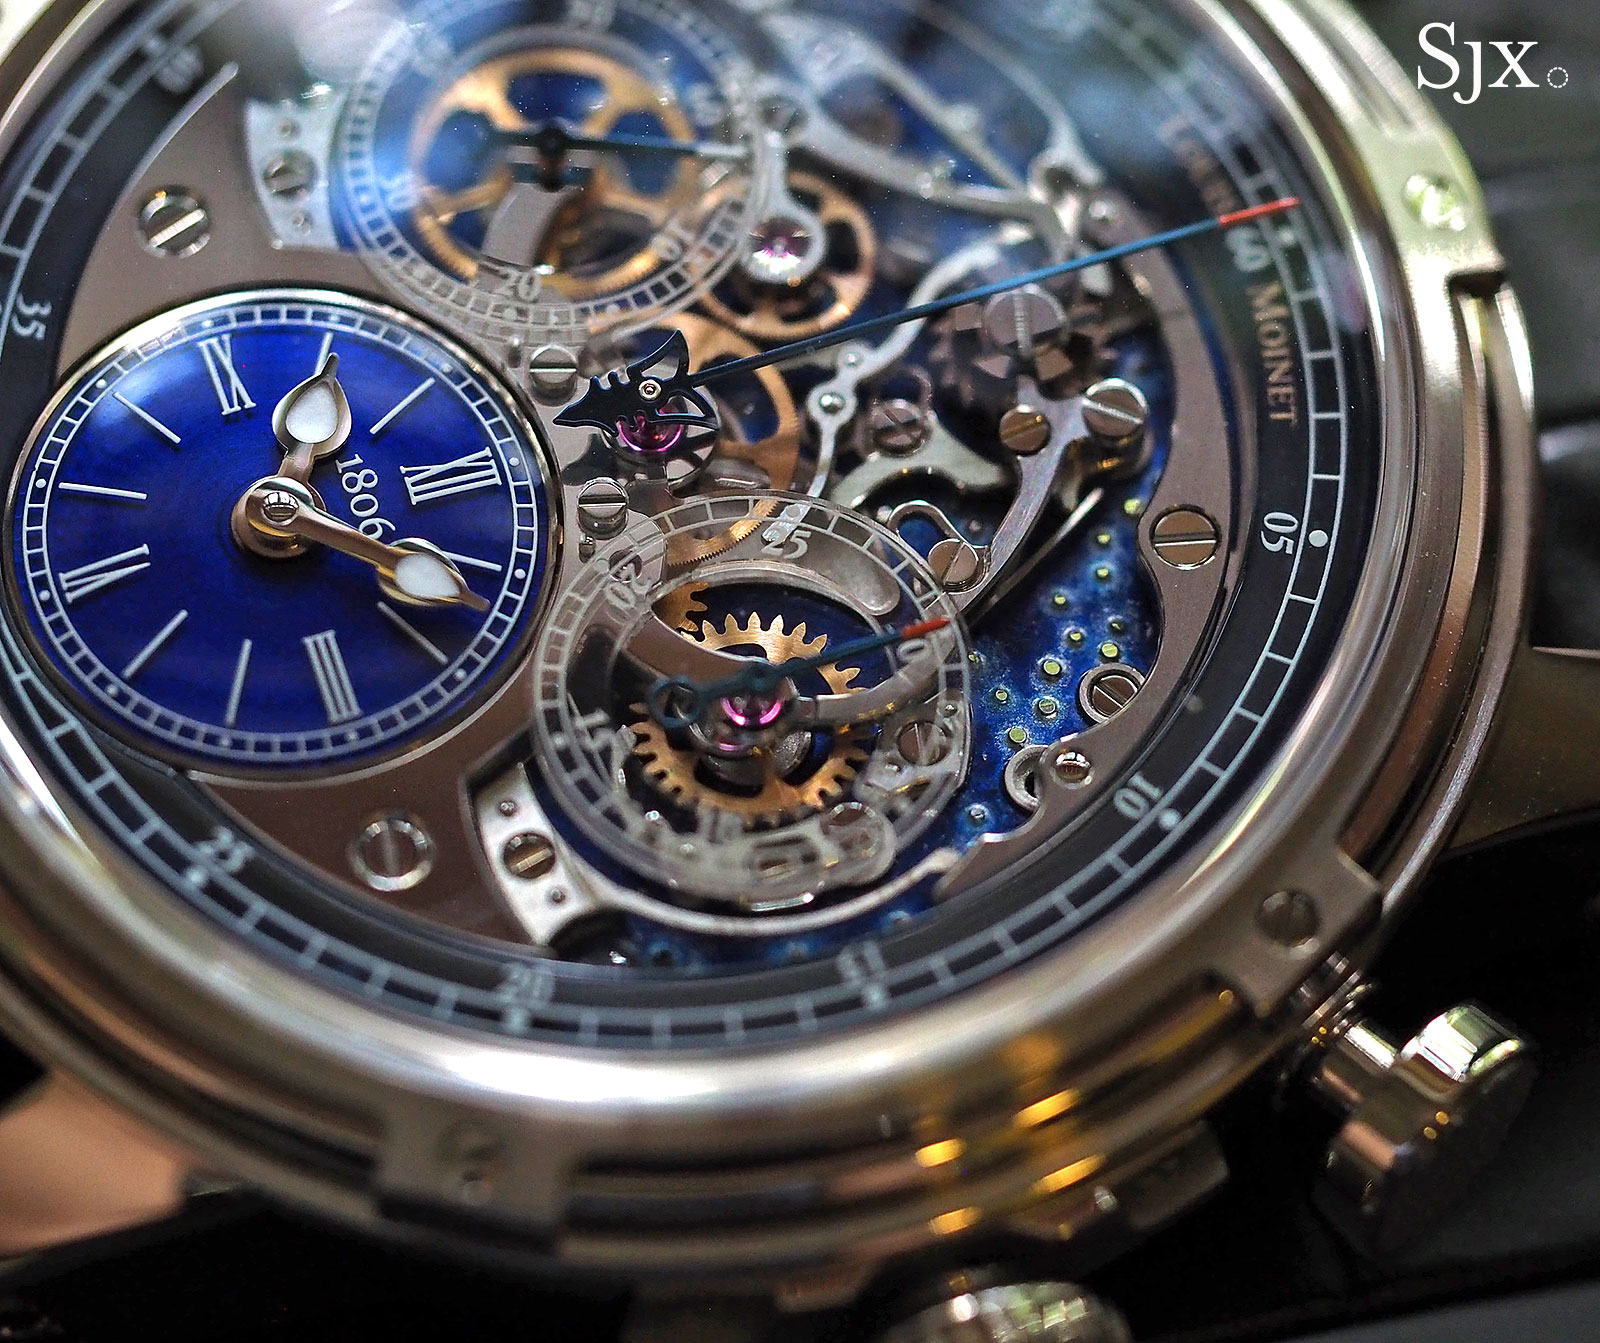 Louis Moinet Memoris 200th Anniversary 2